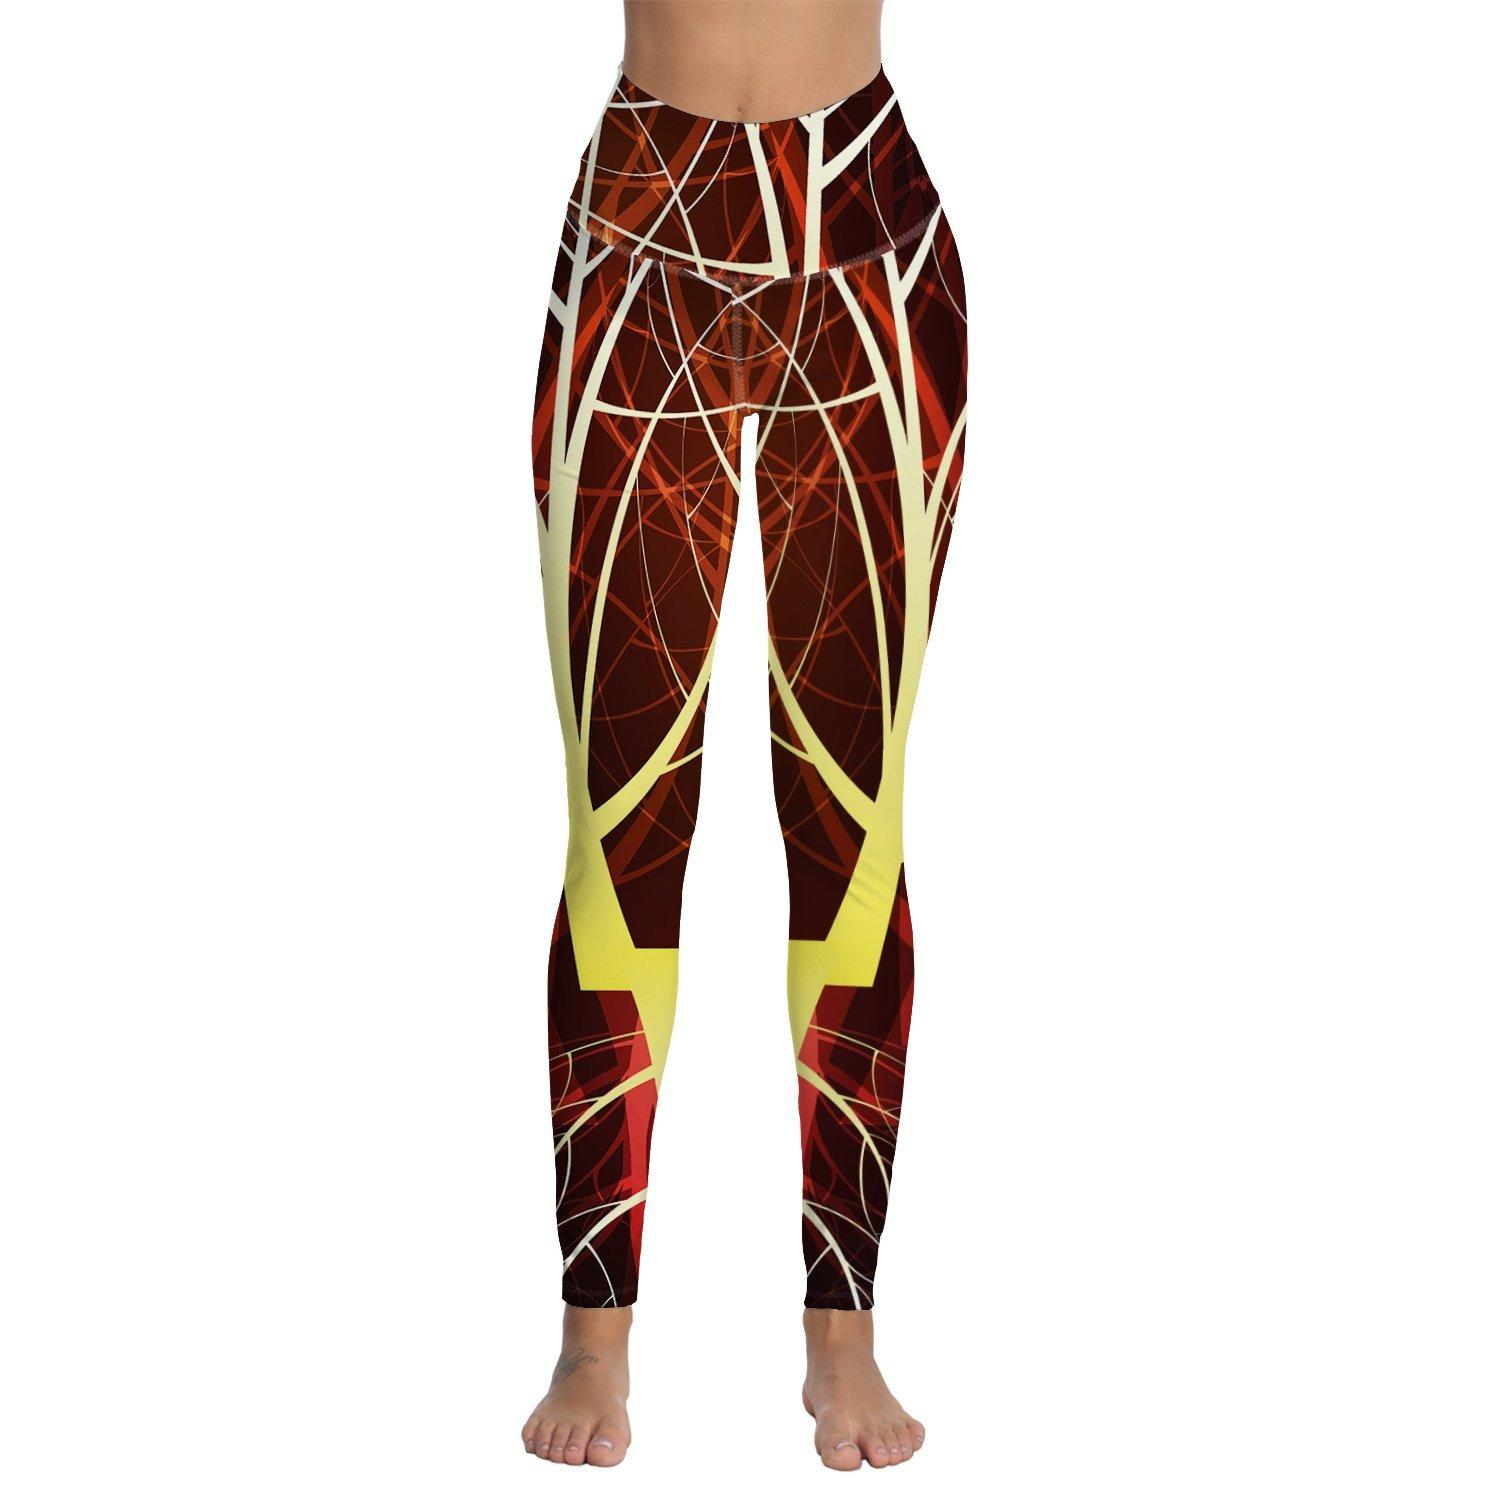 53aae1cd377e1c 2019 Womens Digital Printed High Waist Workout Leggings Athletic Running  Jogging Workout Yoga Pants From Lookest, $31.69 | DHgate.Com